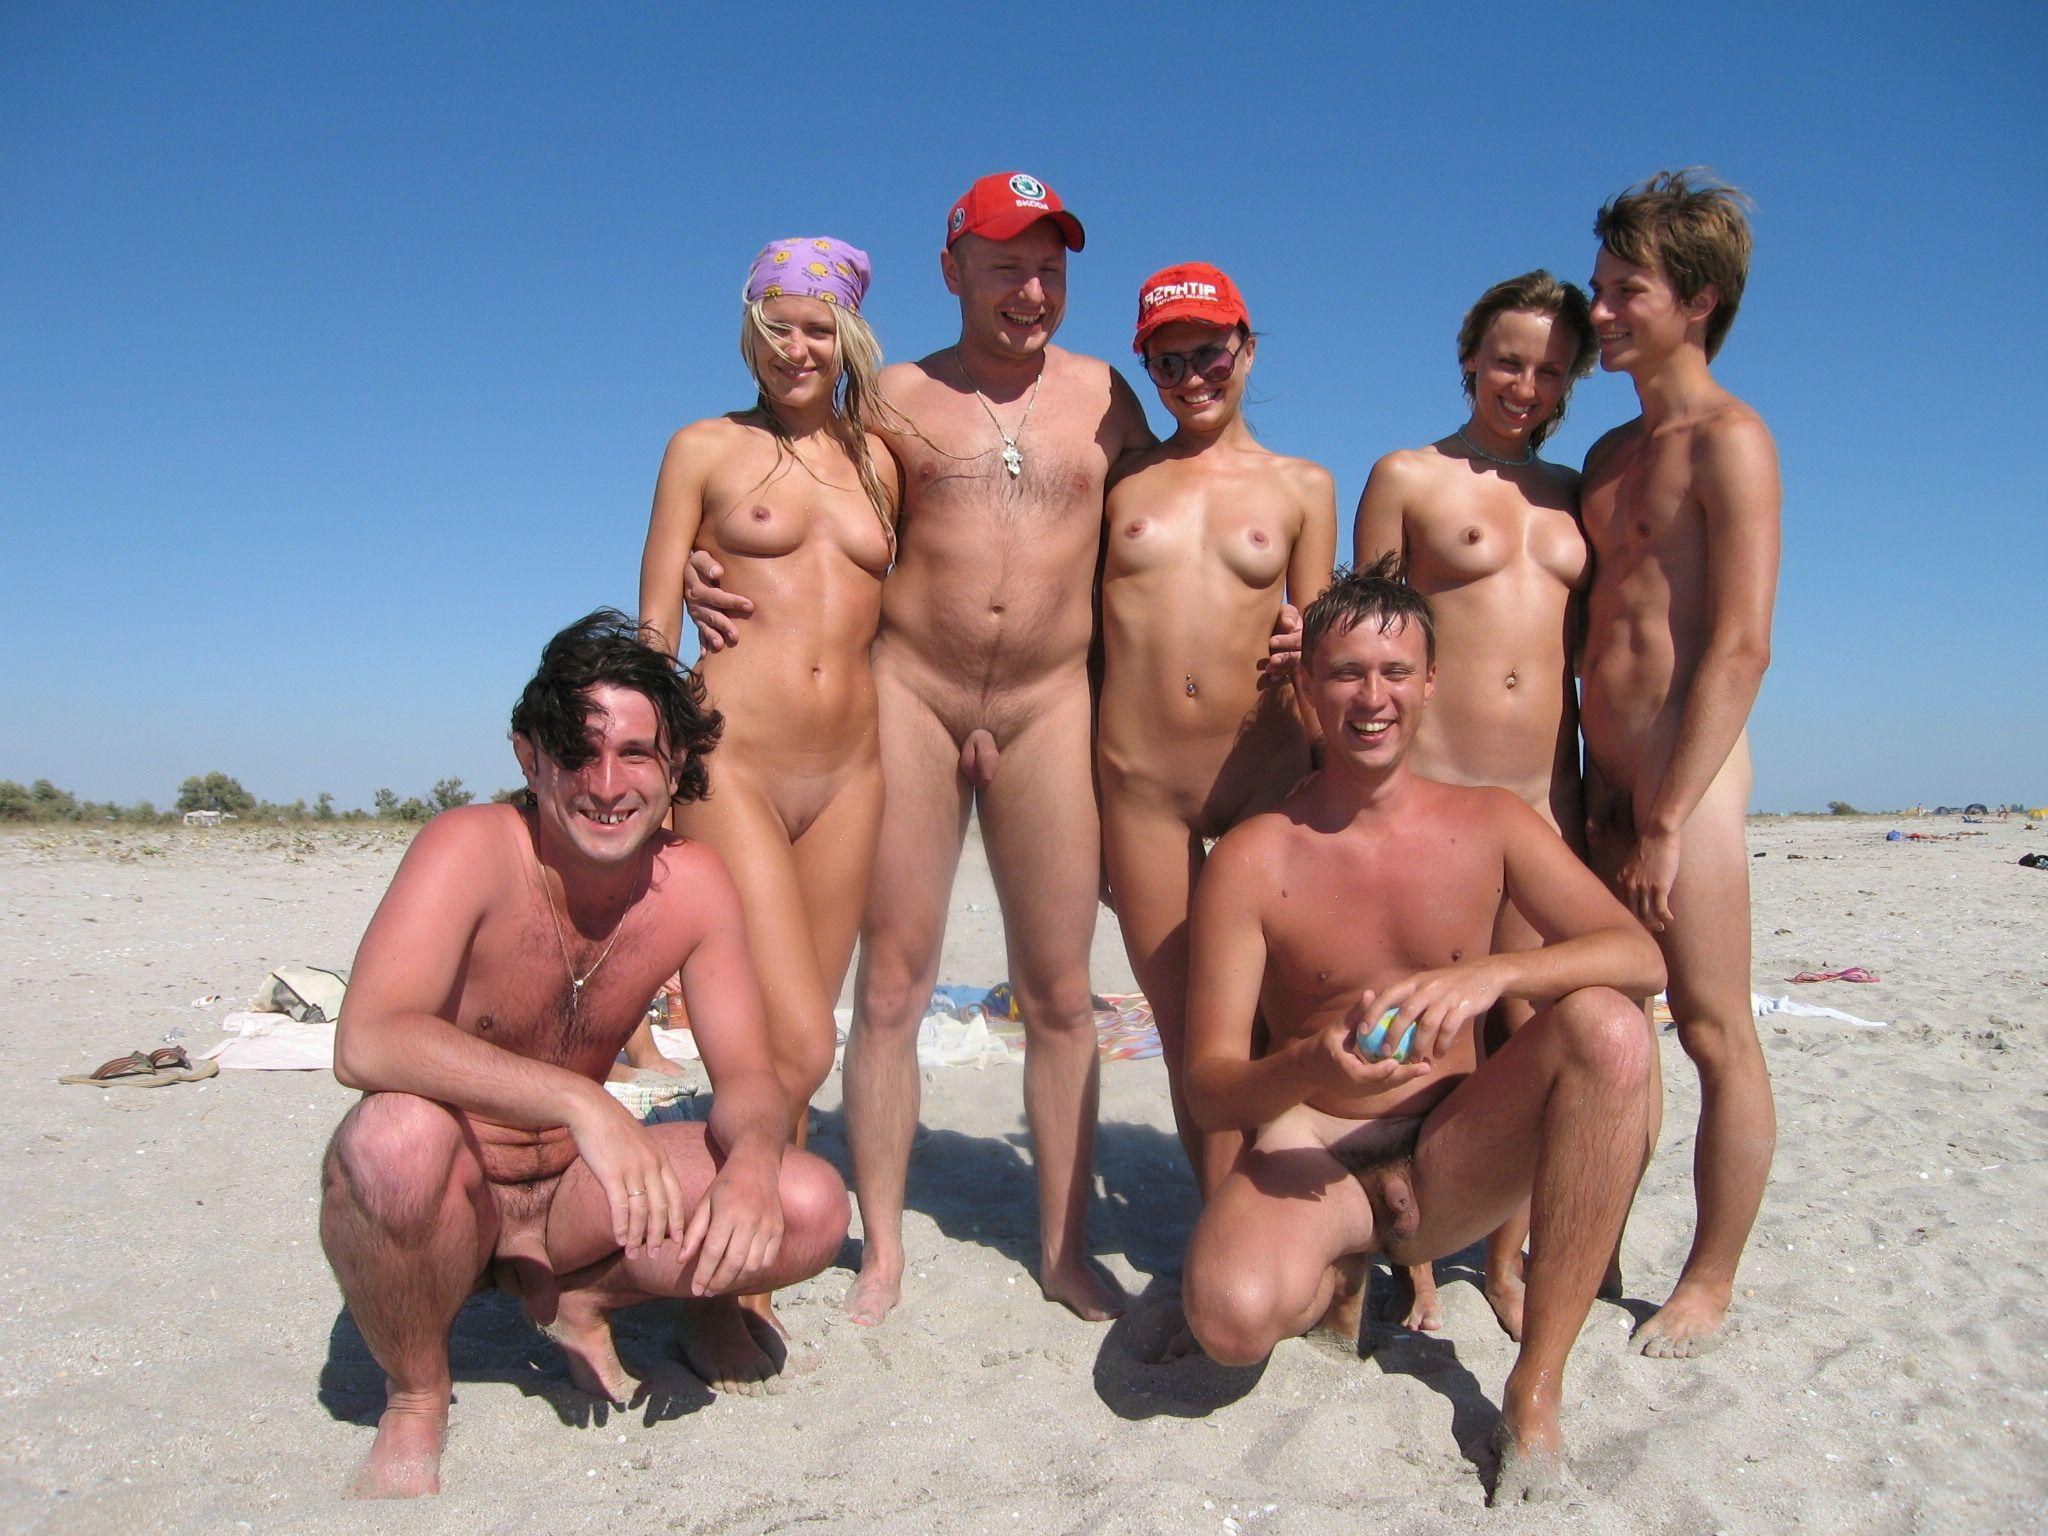 Speaking, would naked beach image phrase